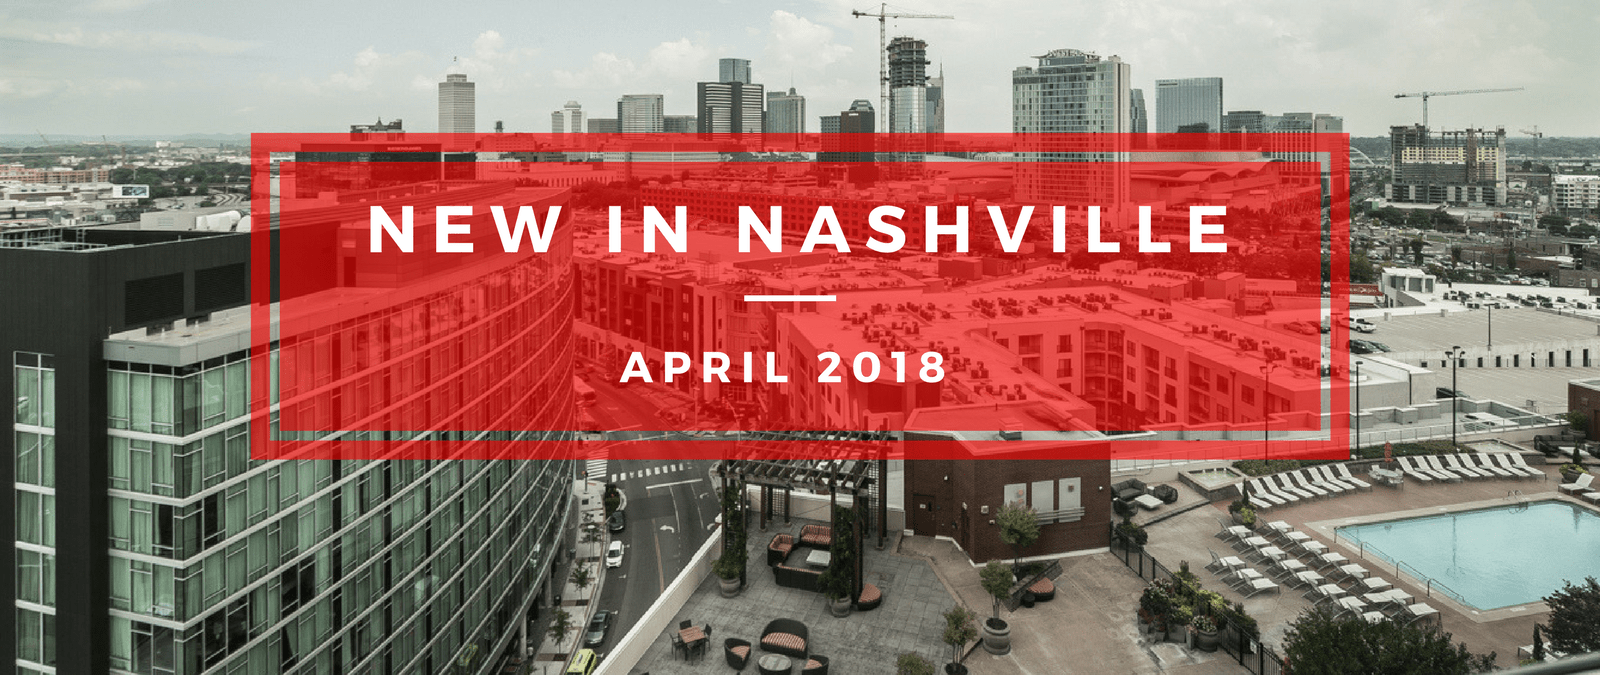 New developments in Nashville April 2018